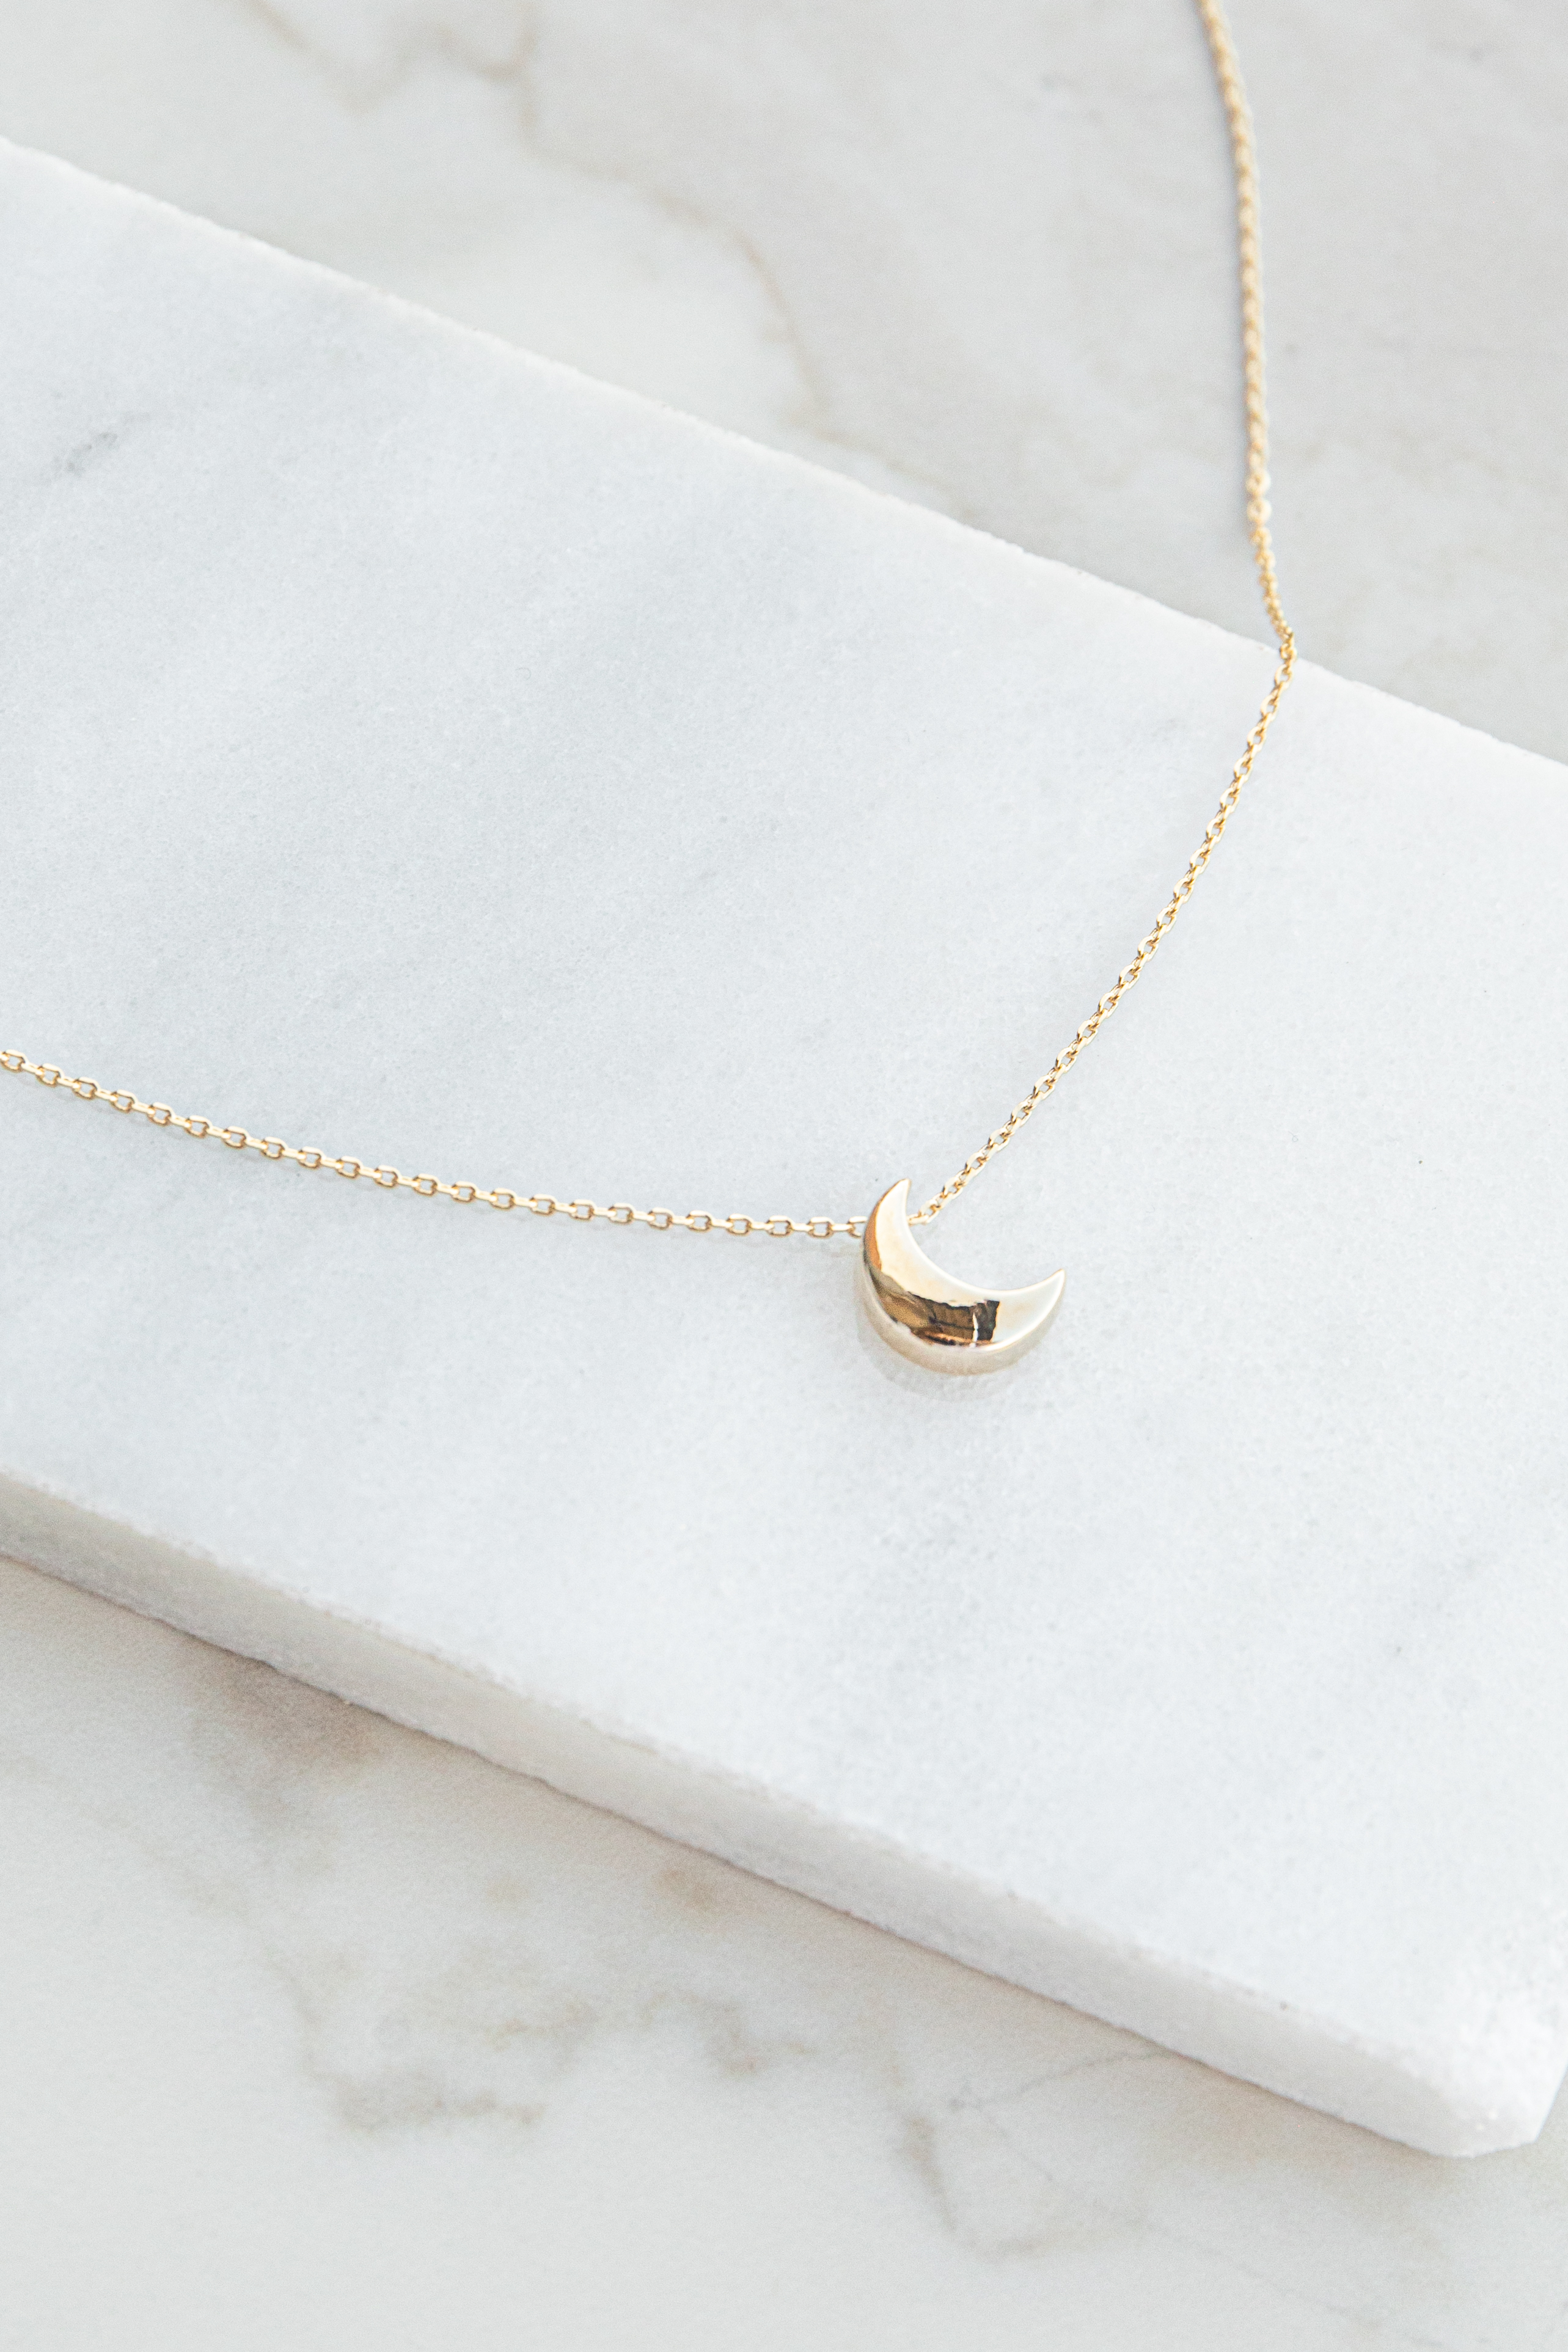 Gold Dainty Short Necklace with Tiny Moon Charm Detail